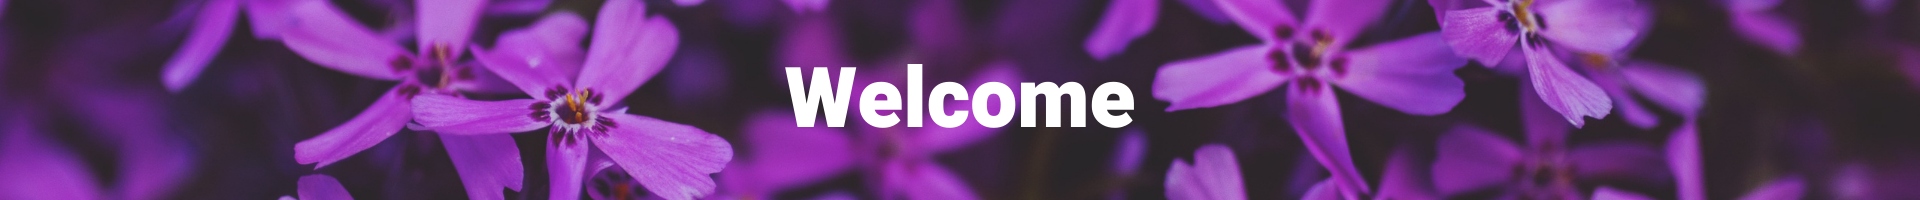 """The text """"Welcome"""" in white on a purple flower background."""